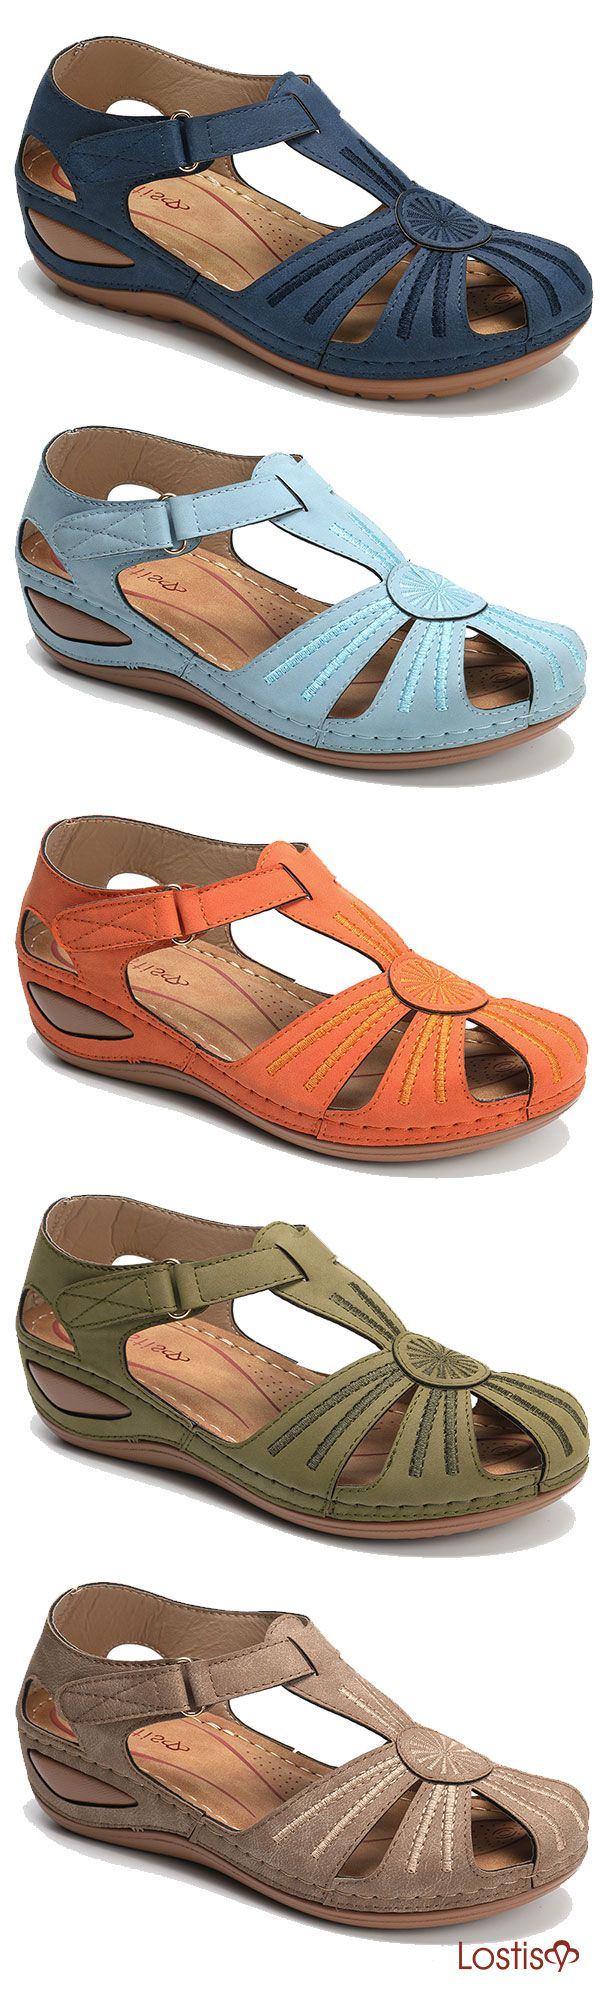 Do you want to try shoes that you like to go on clouds with? New Sandals – Superb Light & Comfy   – shoes